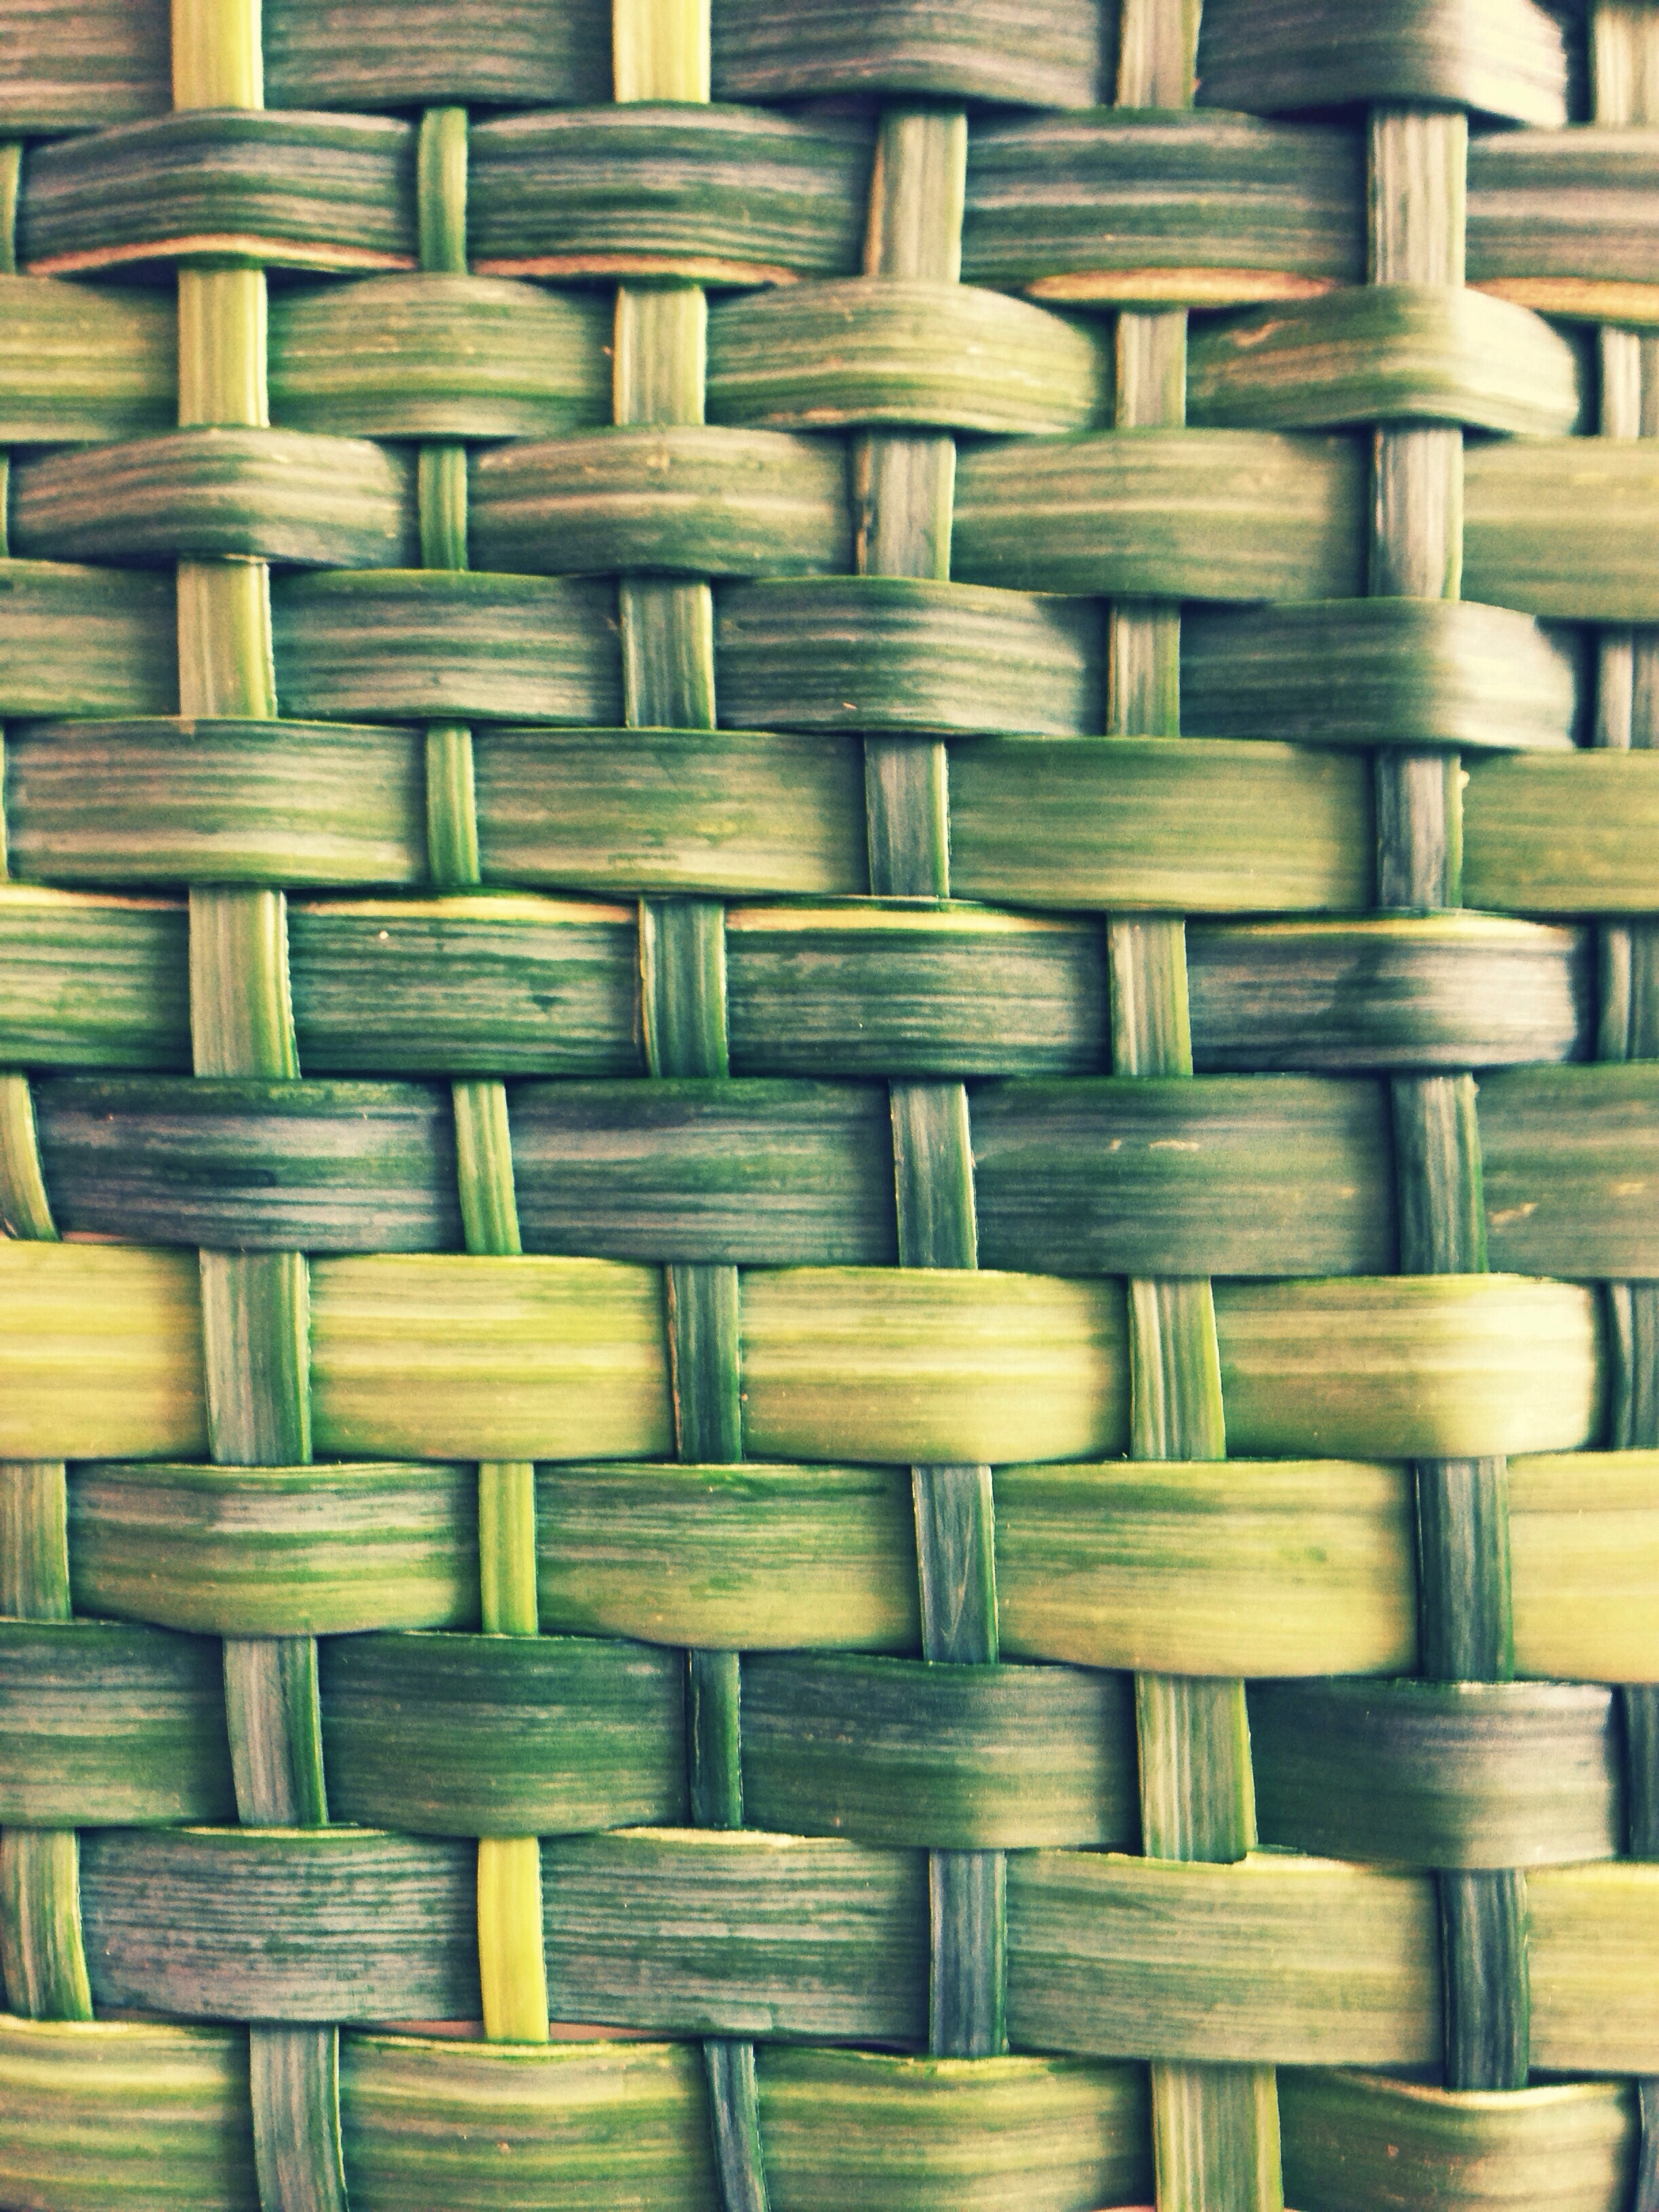 I cut leek leaves into thin strips to weave.